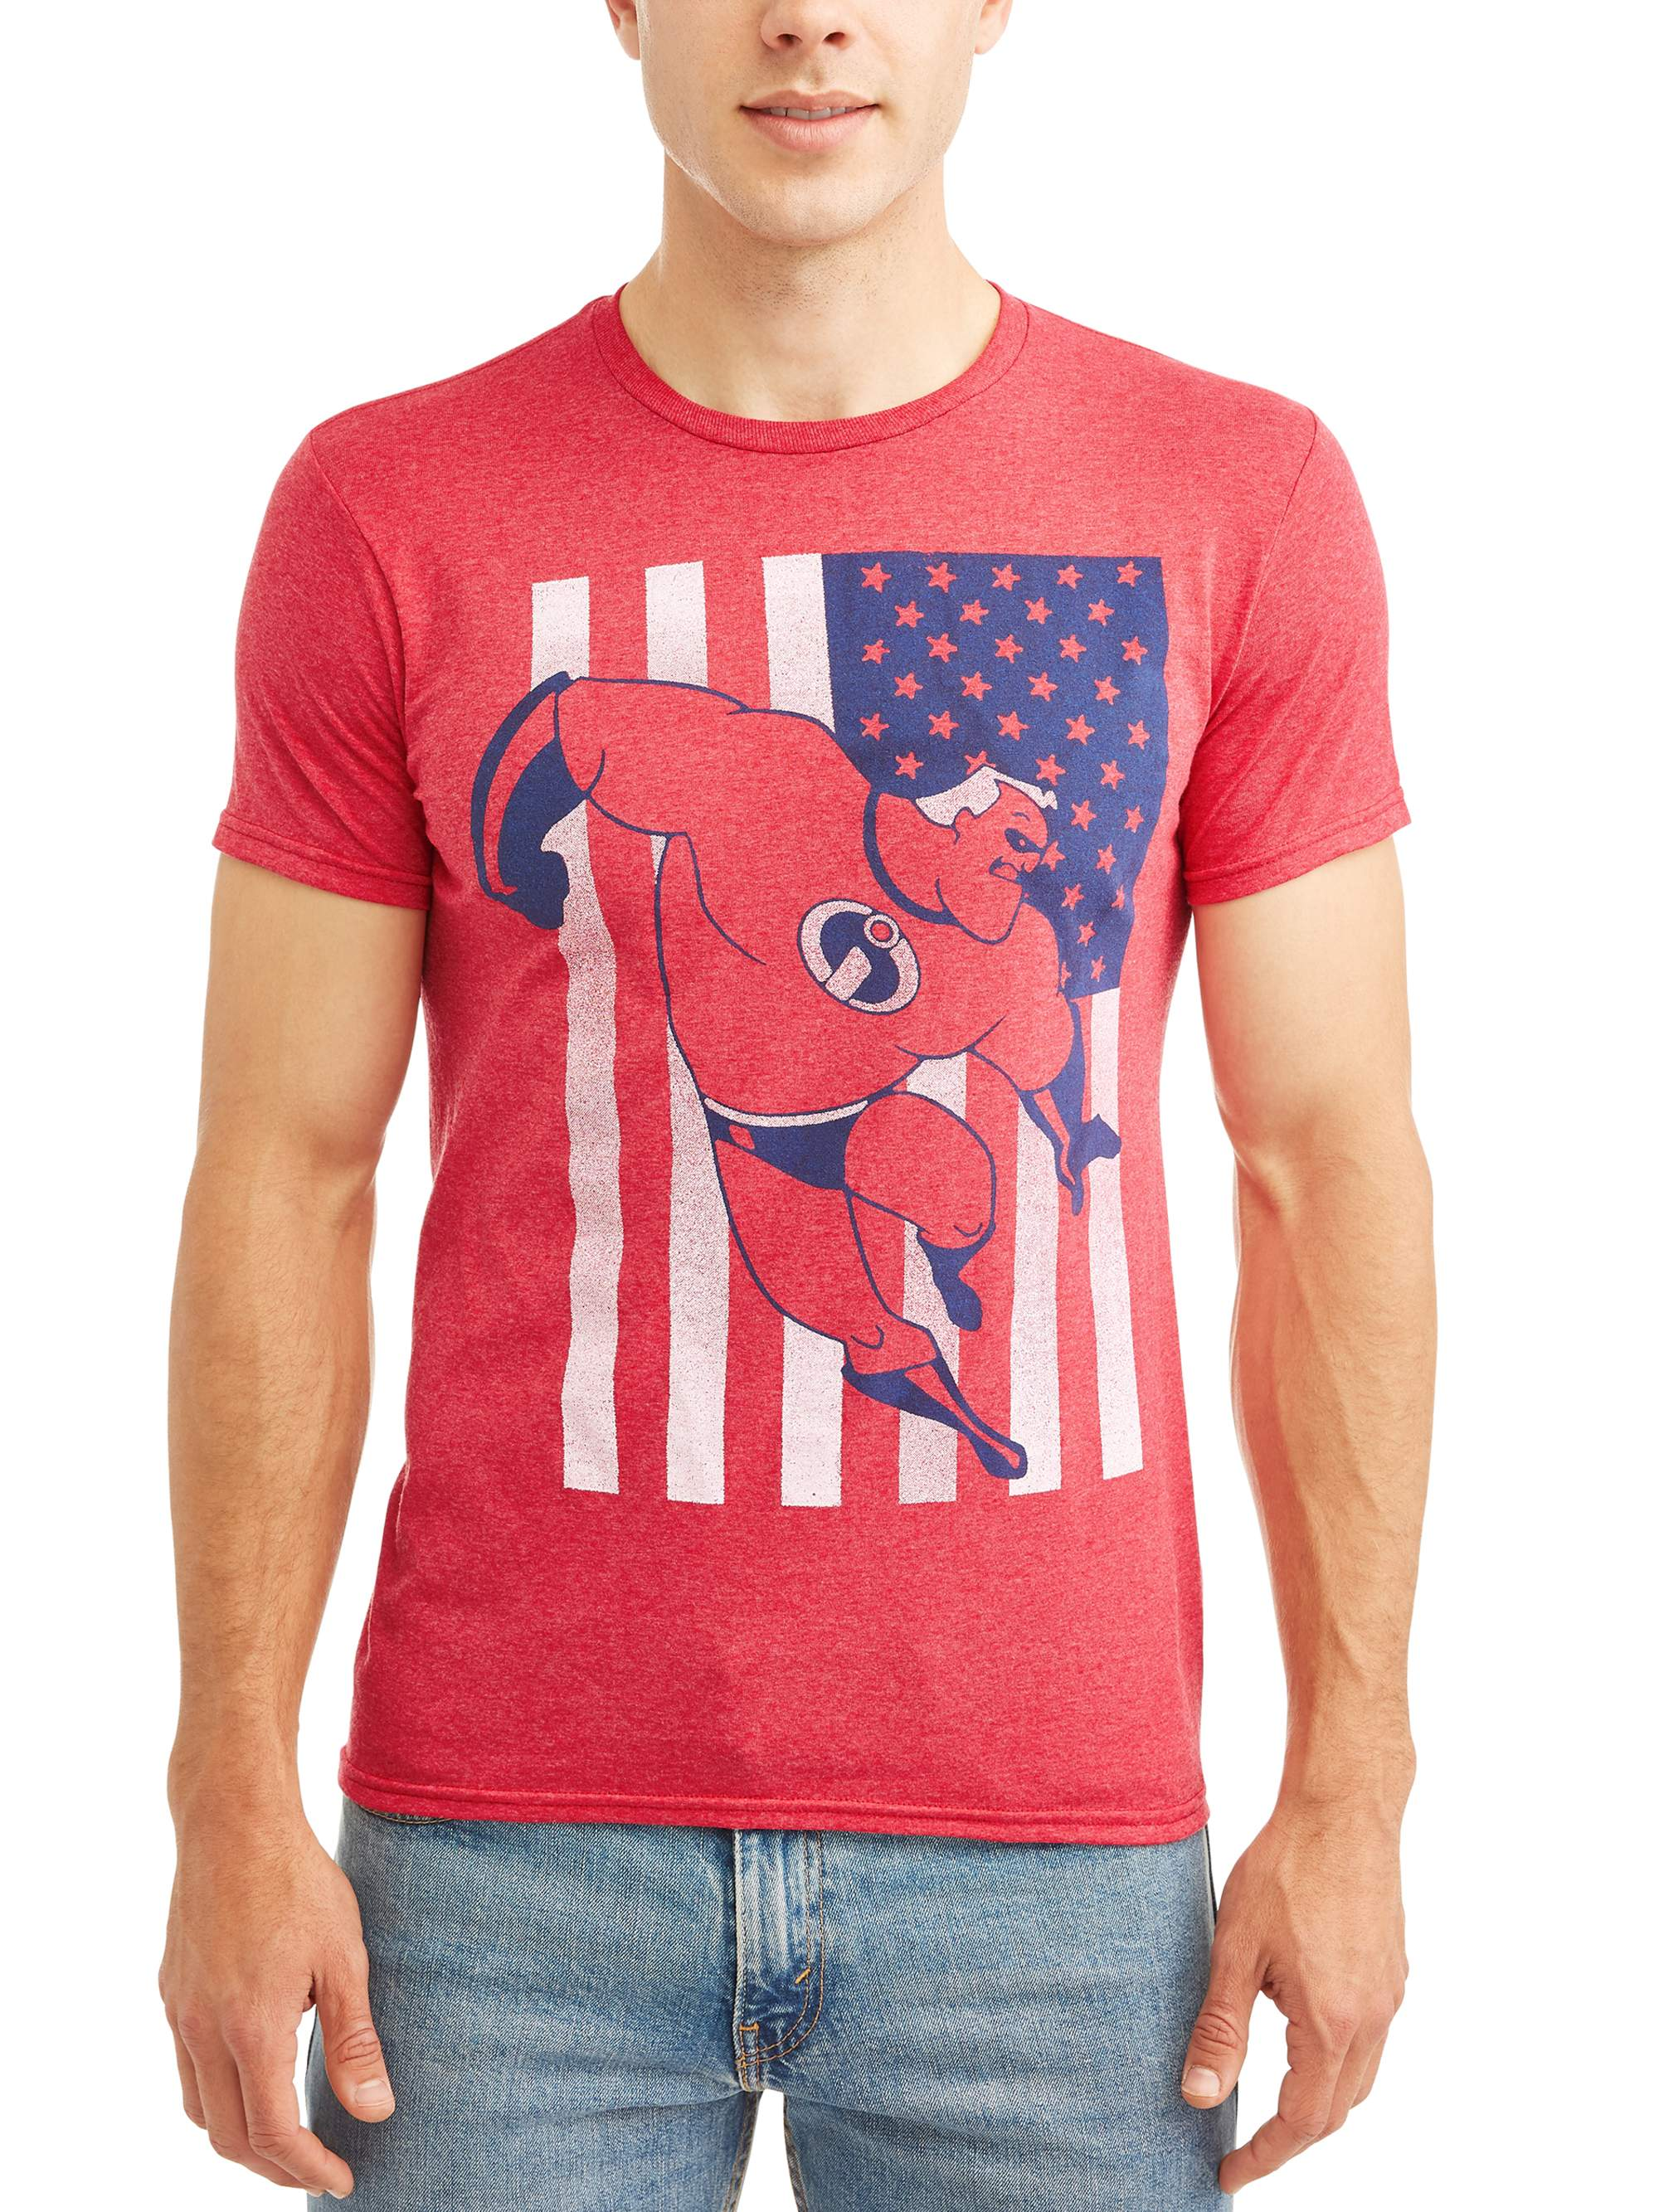 Incredible Flag Men's Graphic T-shirt, up to Size 2XL